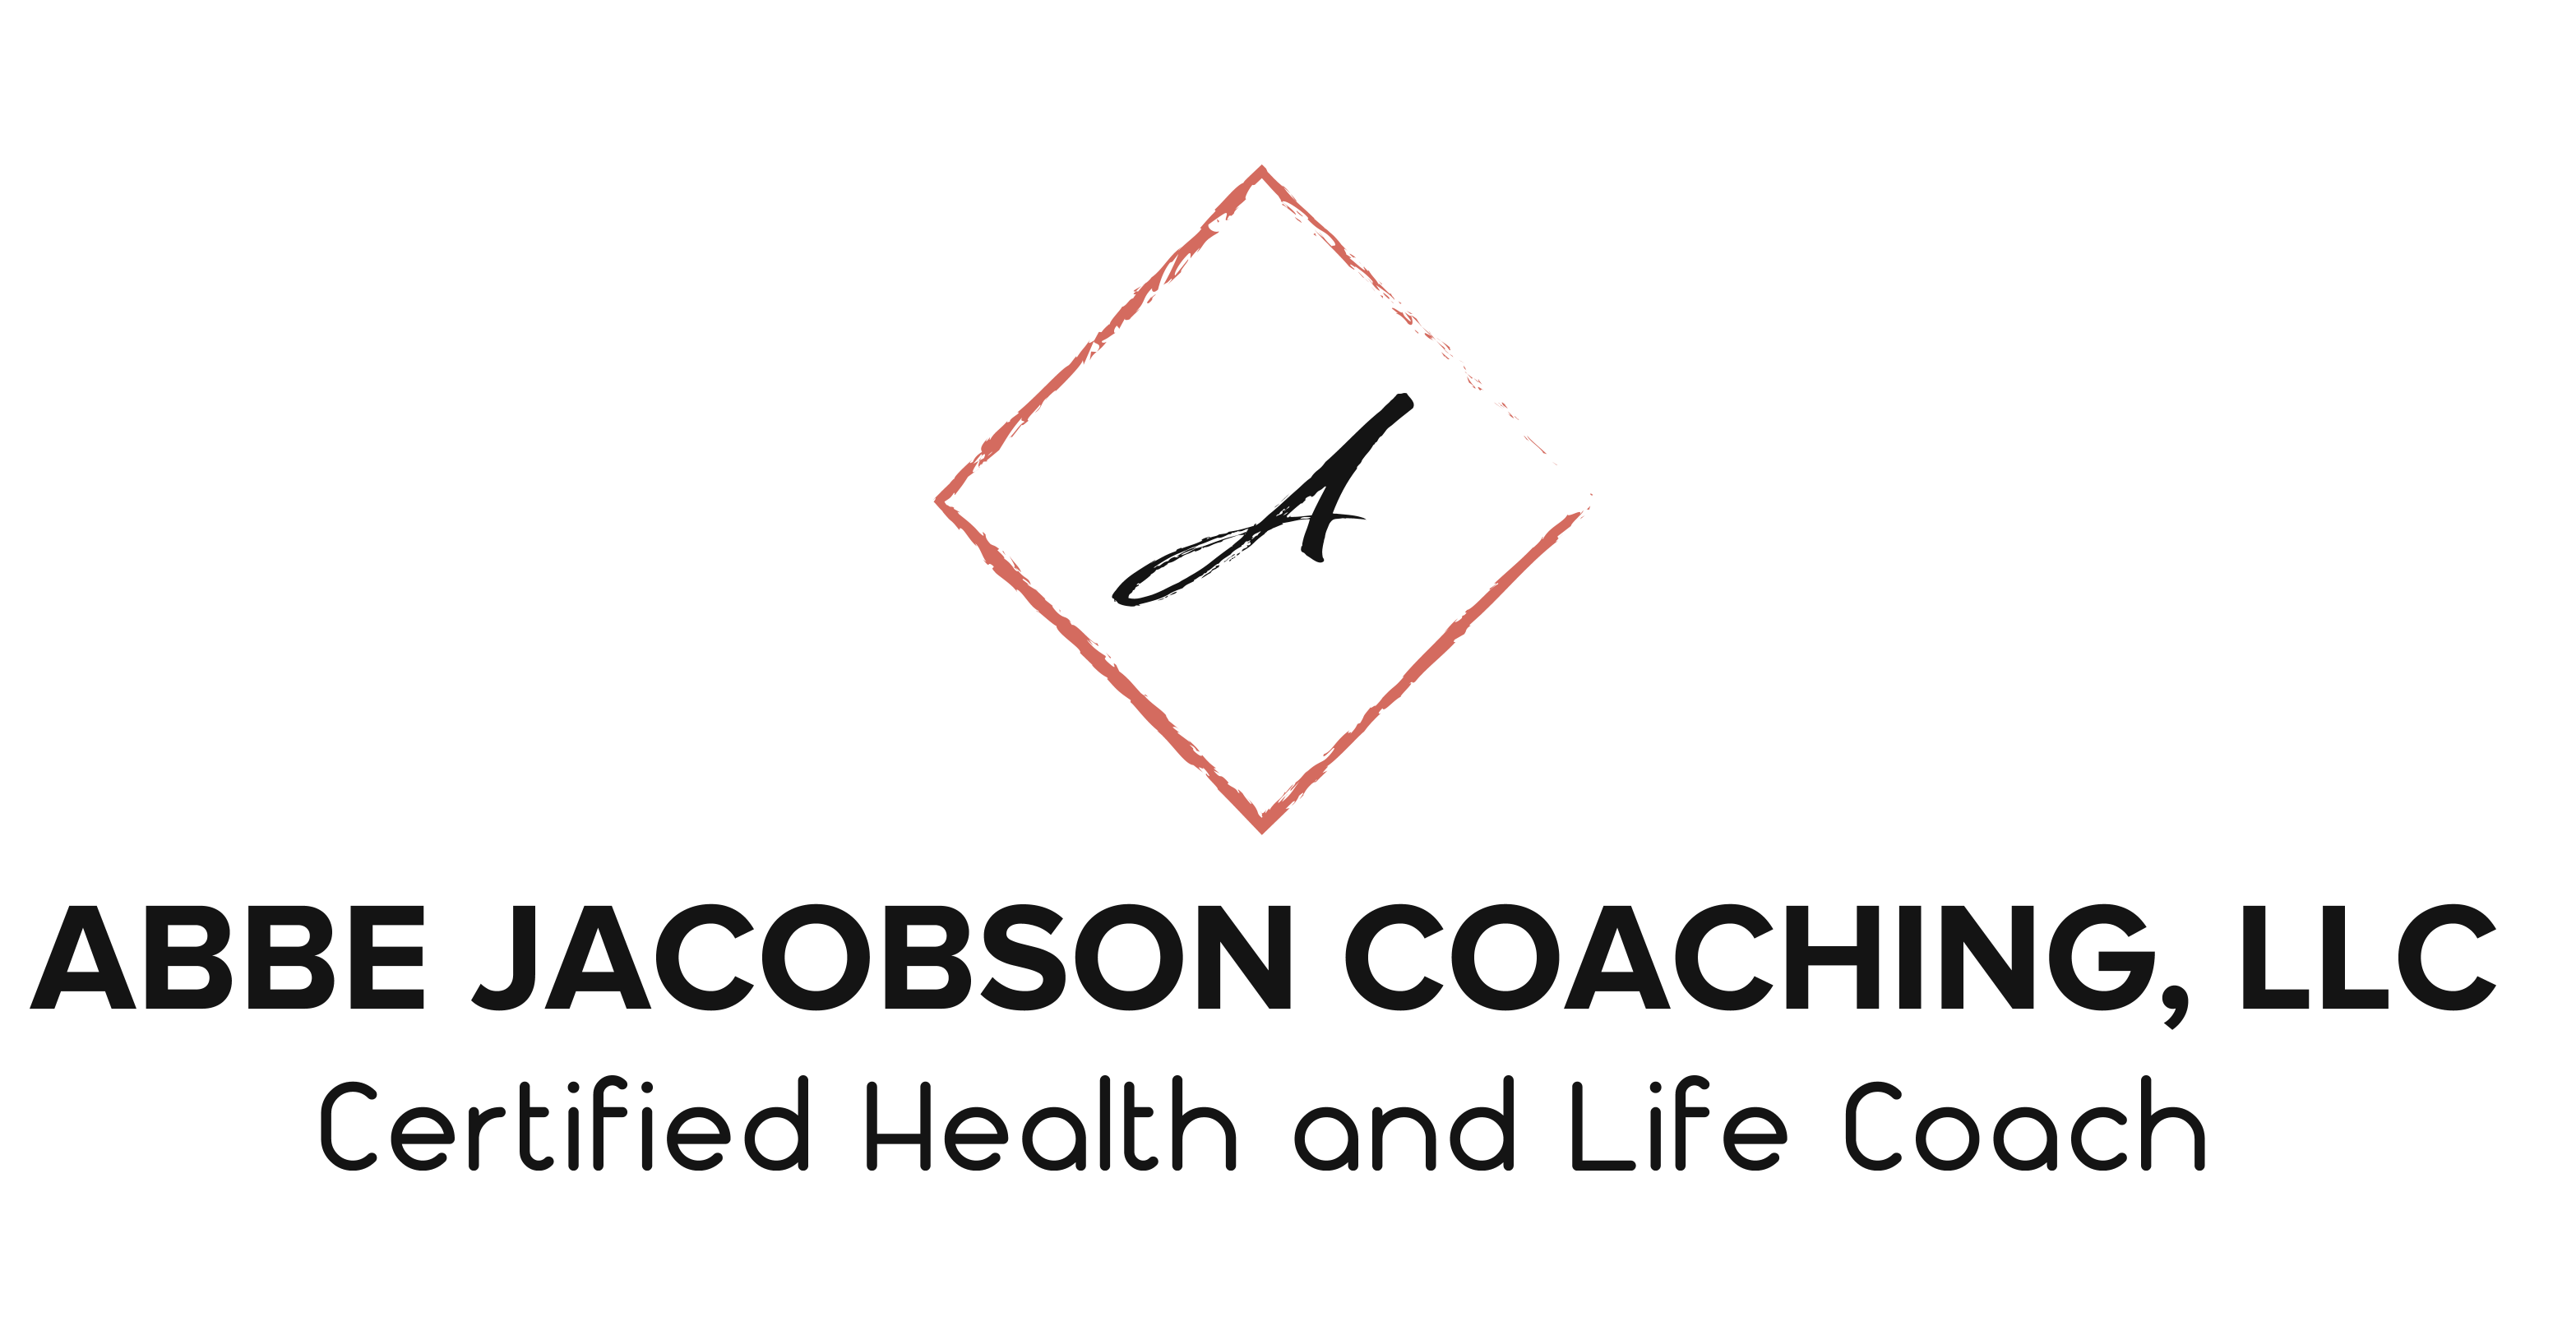 Abbe Jacobson Coaching, LLC